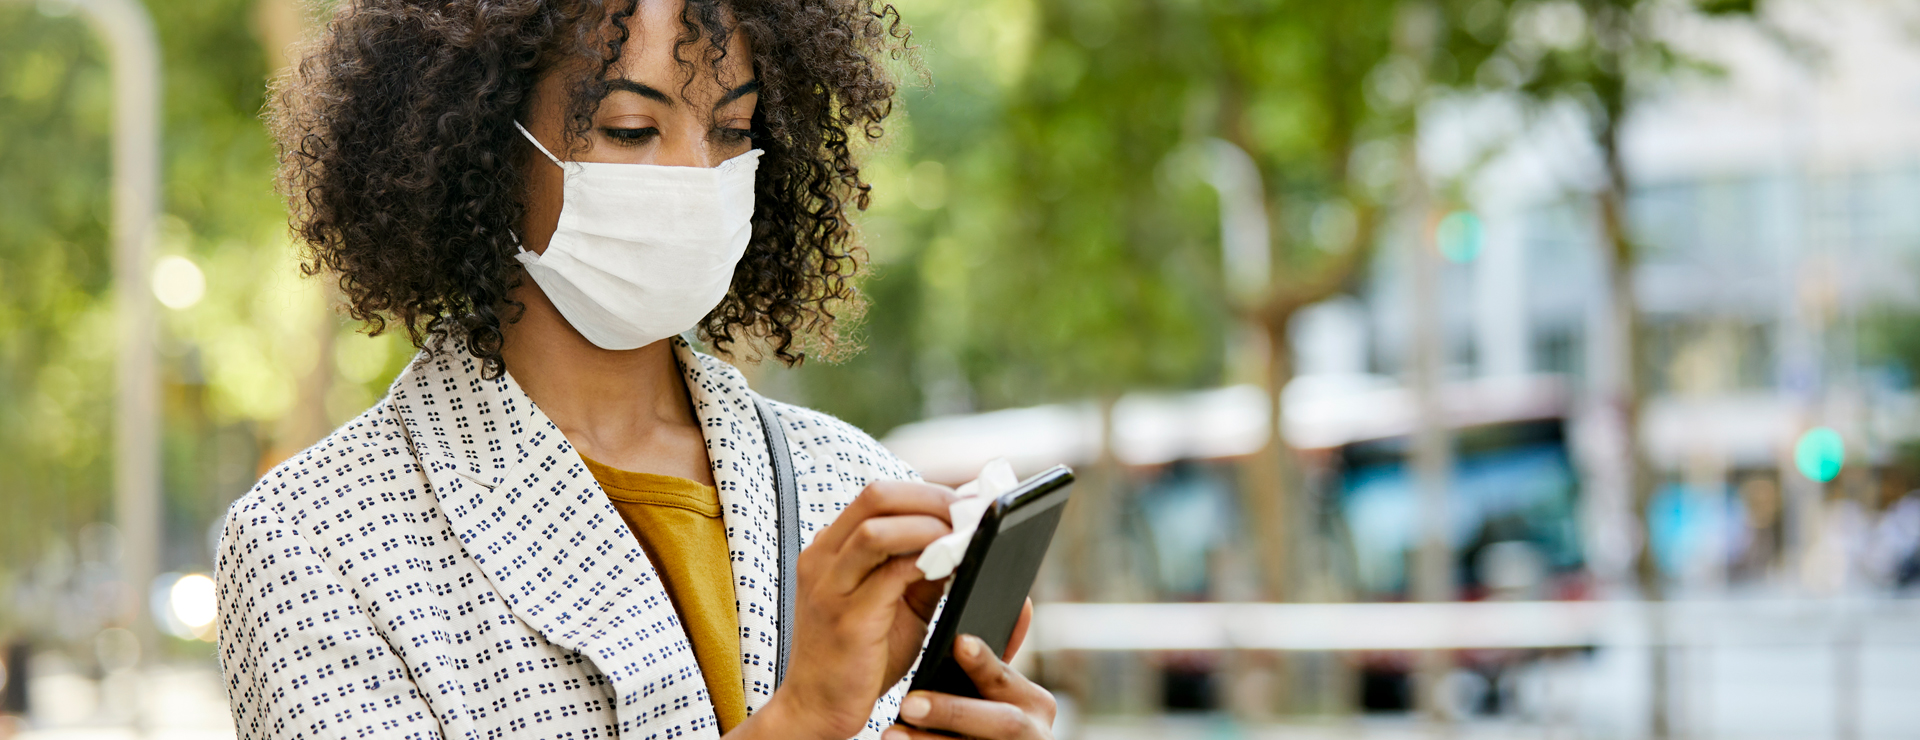 woman on her phone while wearing a face mask